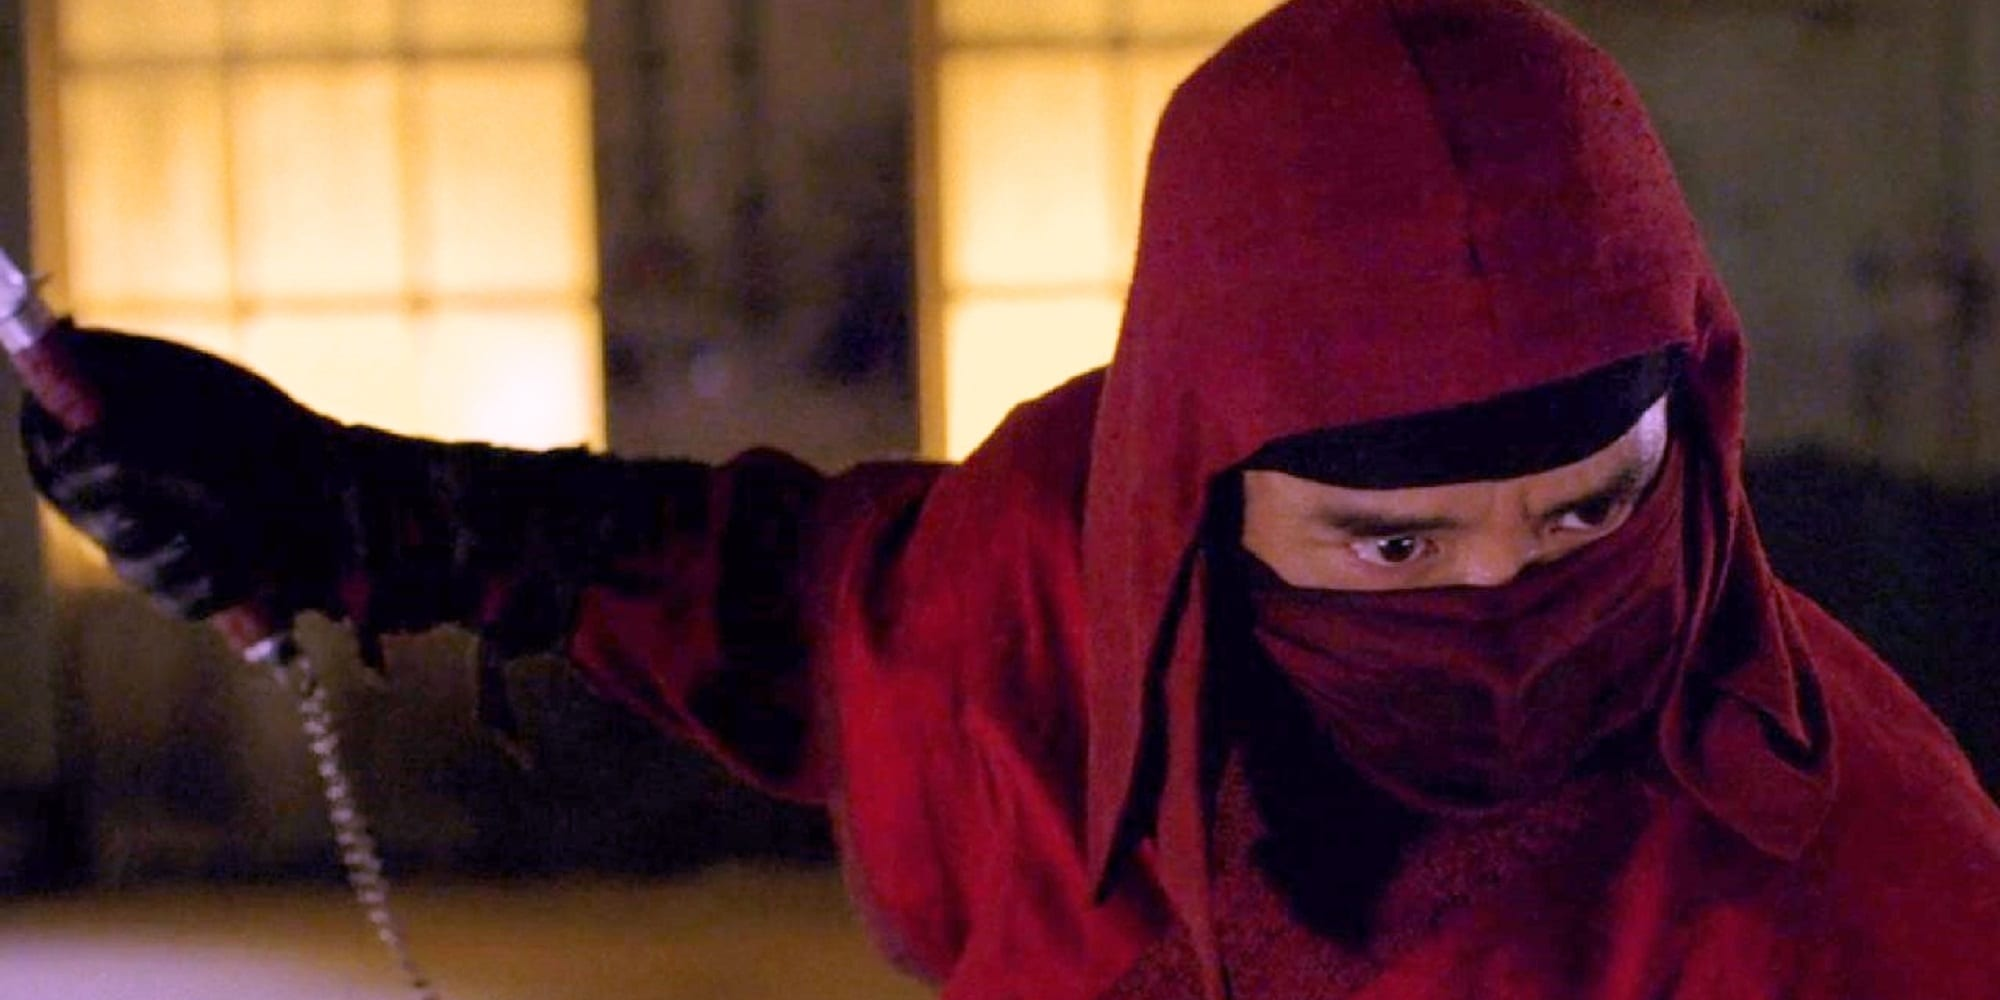 Daredevil Peter Shinkoda Nobu Jeph Loeb Asian Stories Costume